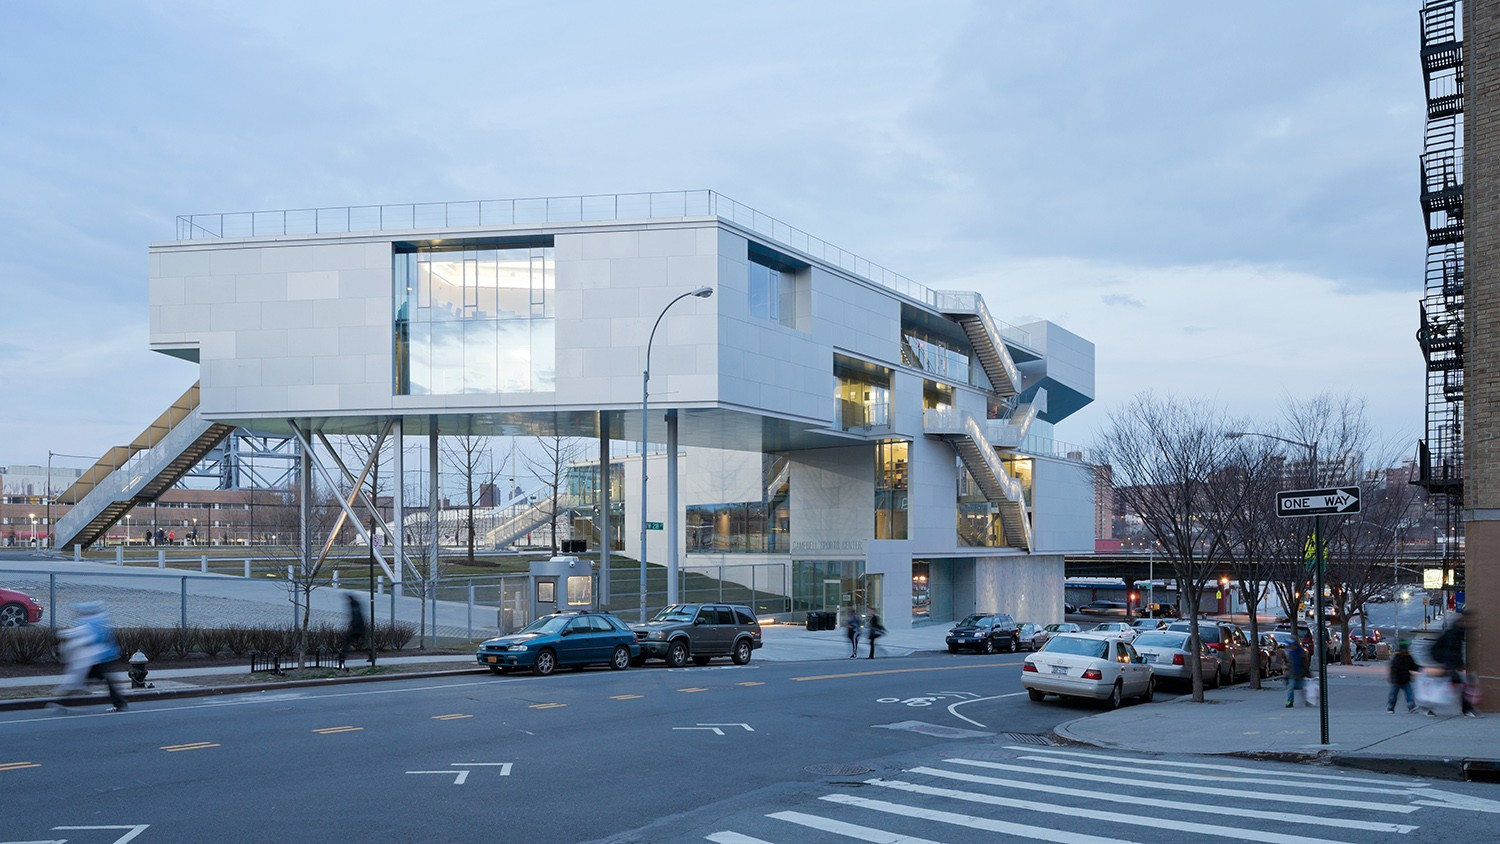 https://stevenholl.sfo2.digitaloceanspaces.com/uploads/projects/project-images/IwanBaan_Campbell13-03SHA2048_WH.jpg